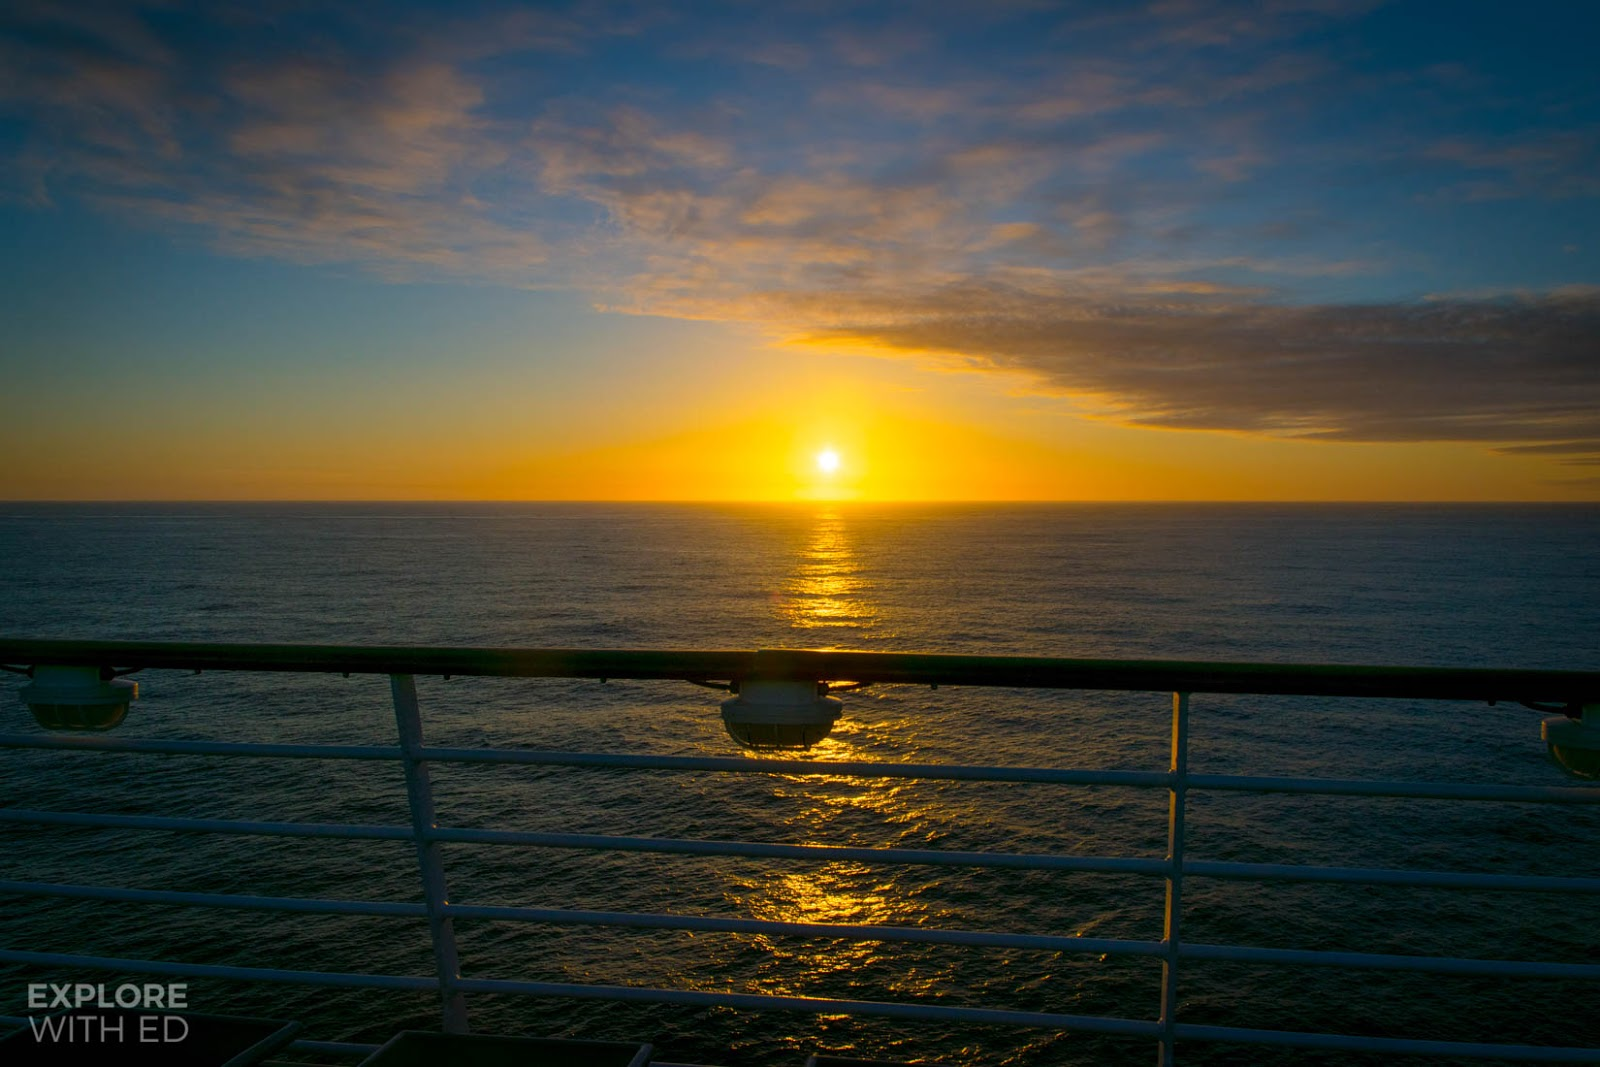 Sunset at sea on a cruise ship